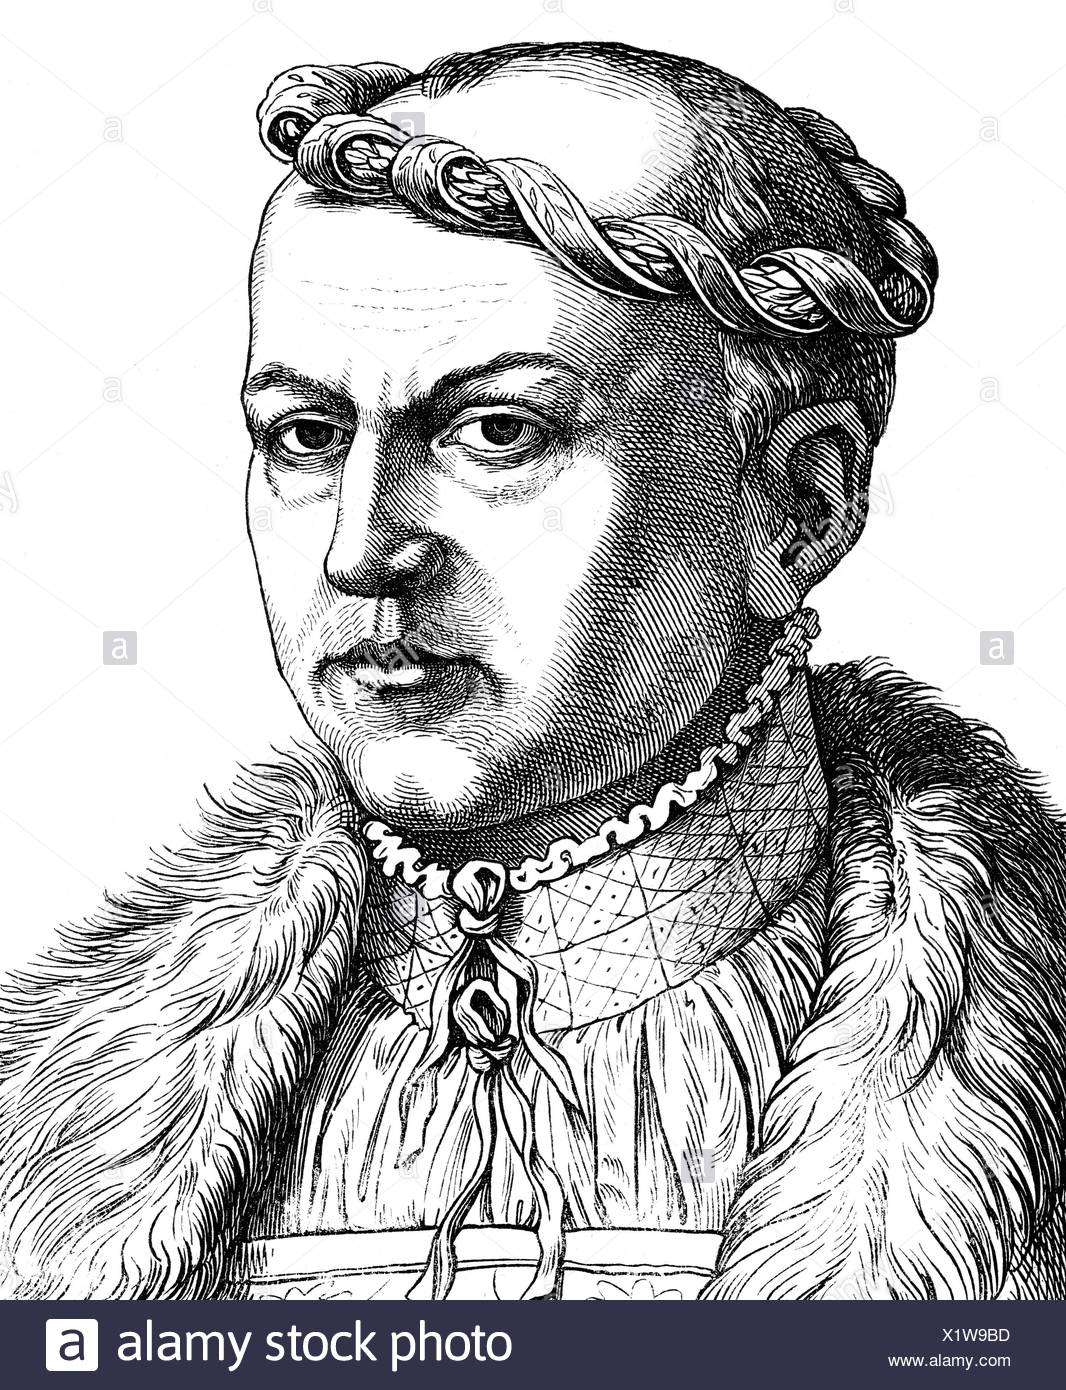 George 'the Bearded', 27.8.1471 - 17.4.1539, Duke of Saxony 12.9.1500 - 17.4.1539, portrait, wood engraving, 19th century, , Additional-Rights-Clearances-NA - Stock Image